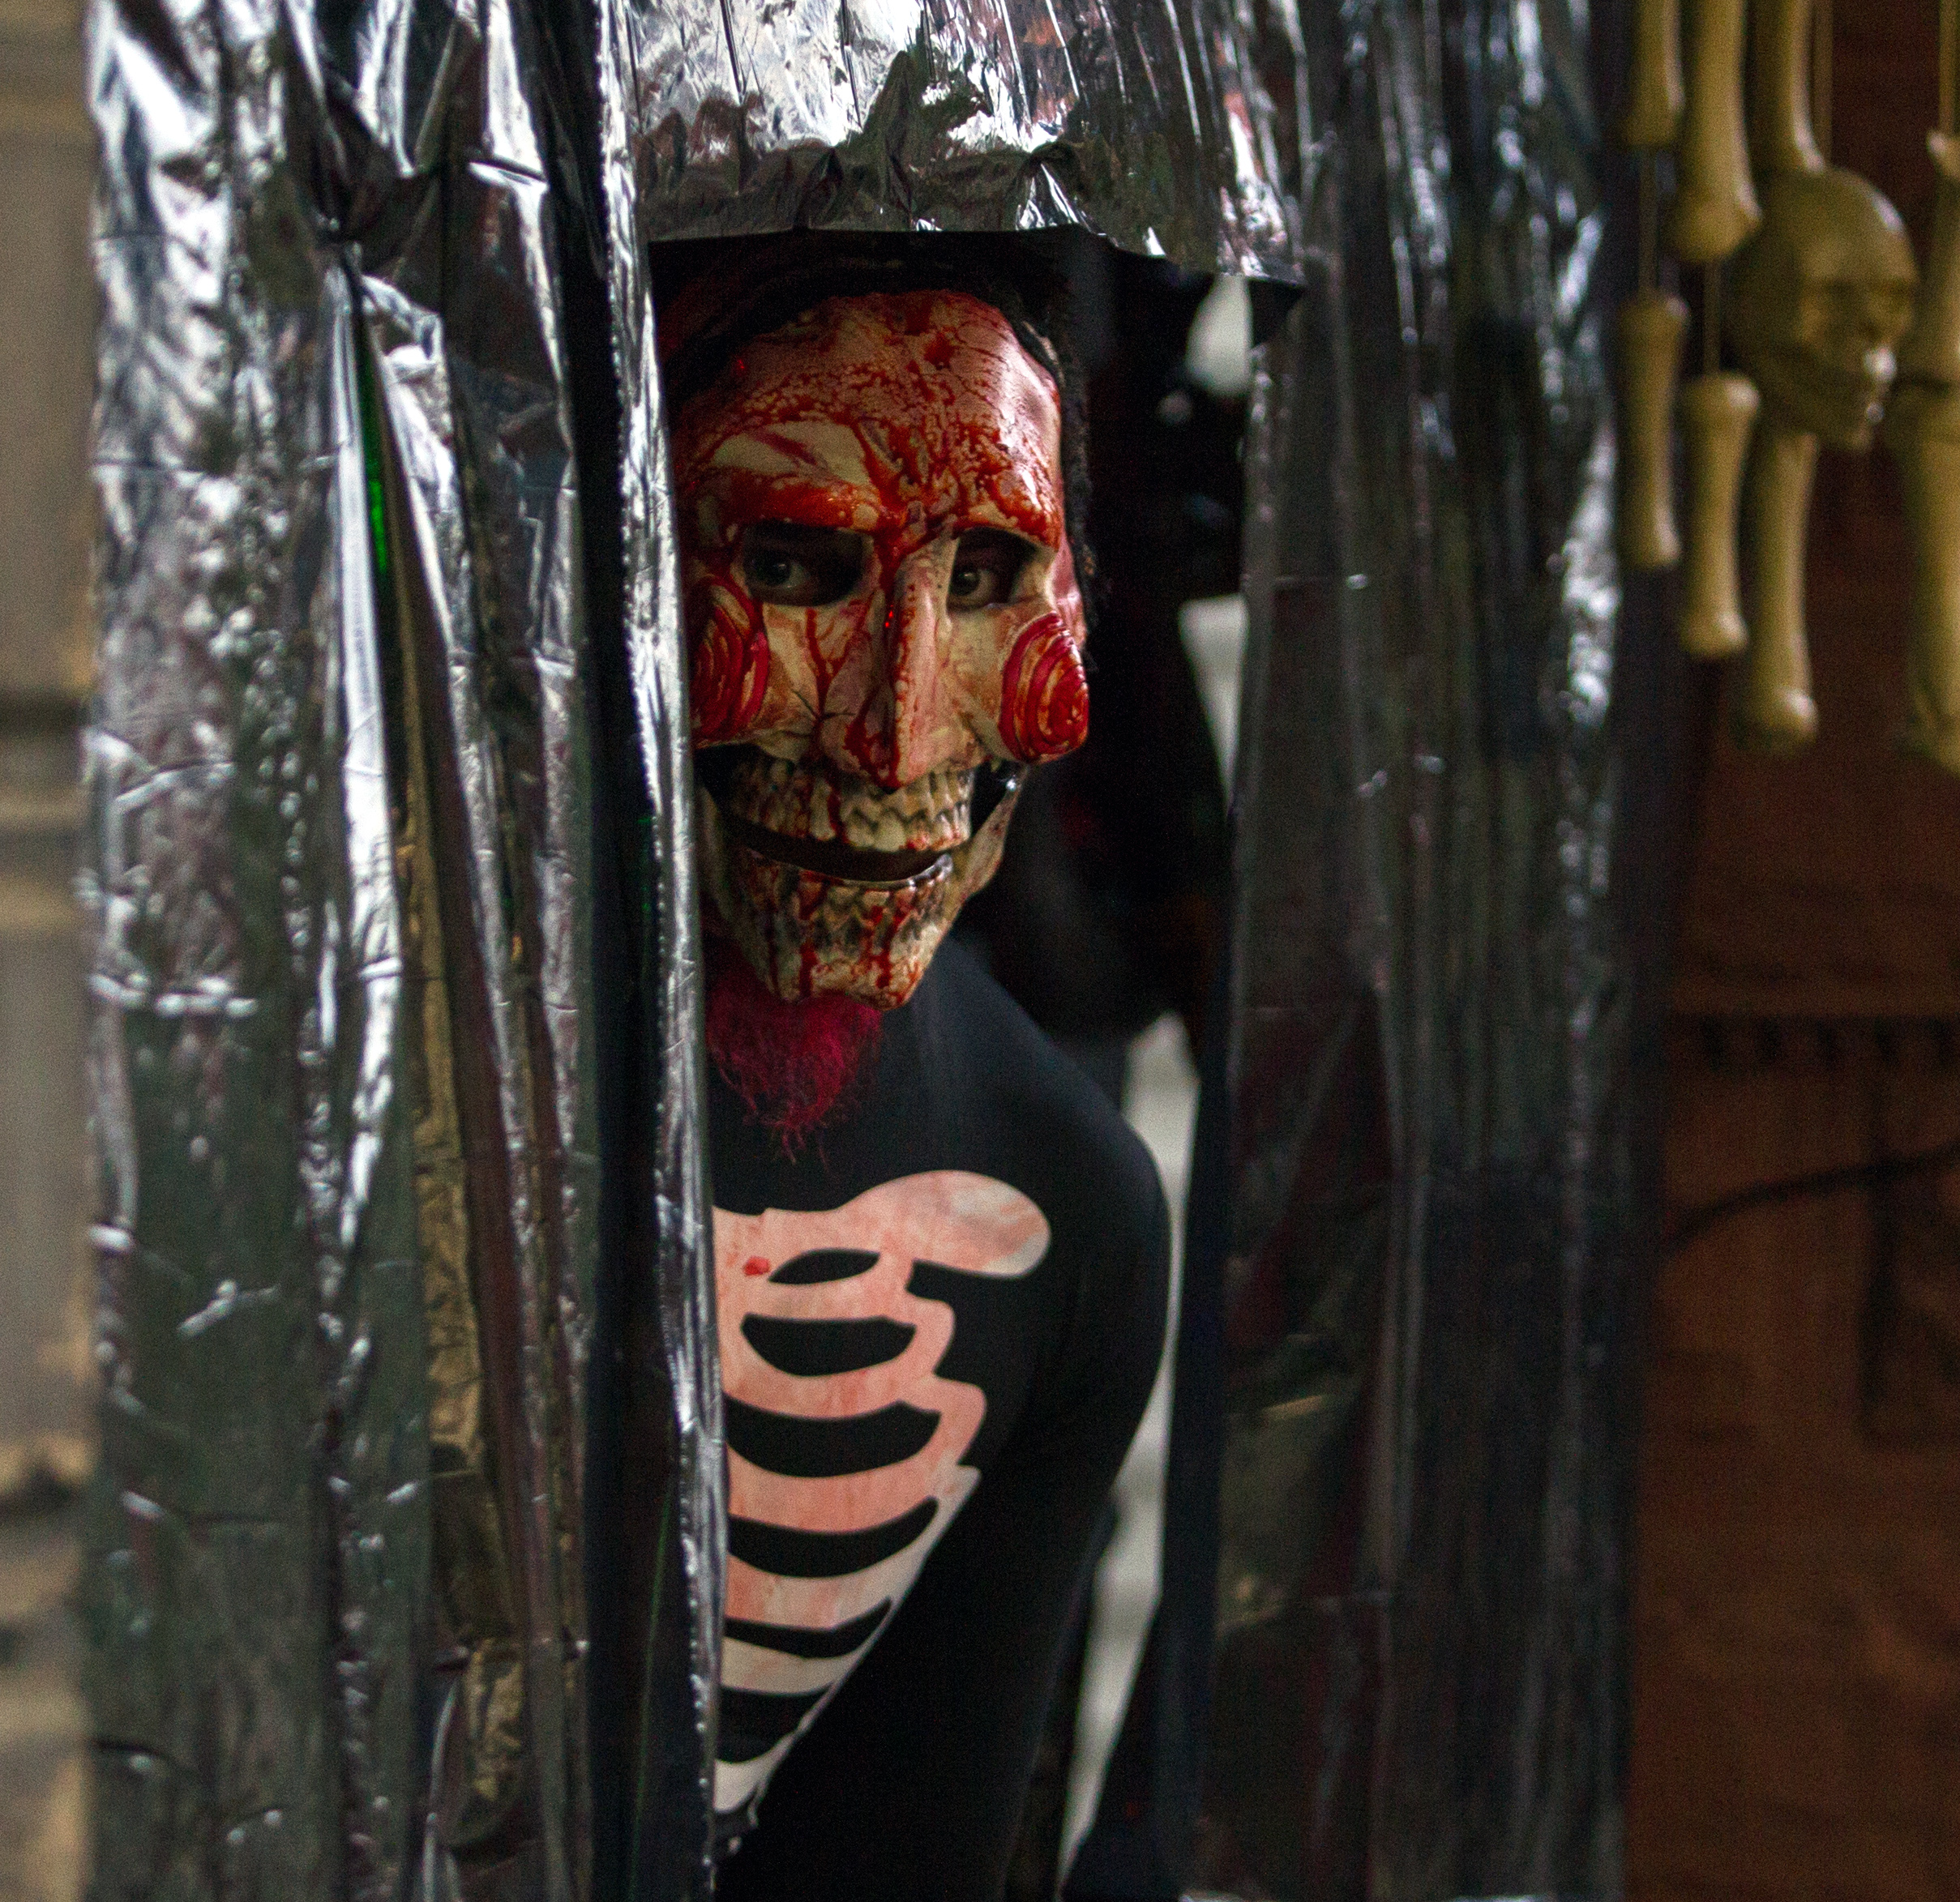 Jake Reynolds peeks out from a plastic curtain as he participates in a haunted house on University Blvd. in Toledo during trick-or-treating on Halloween on Monday, Oct. 31, 2016.